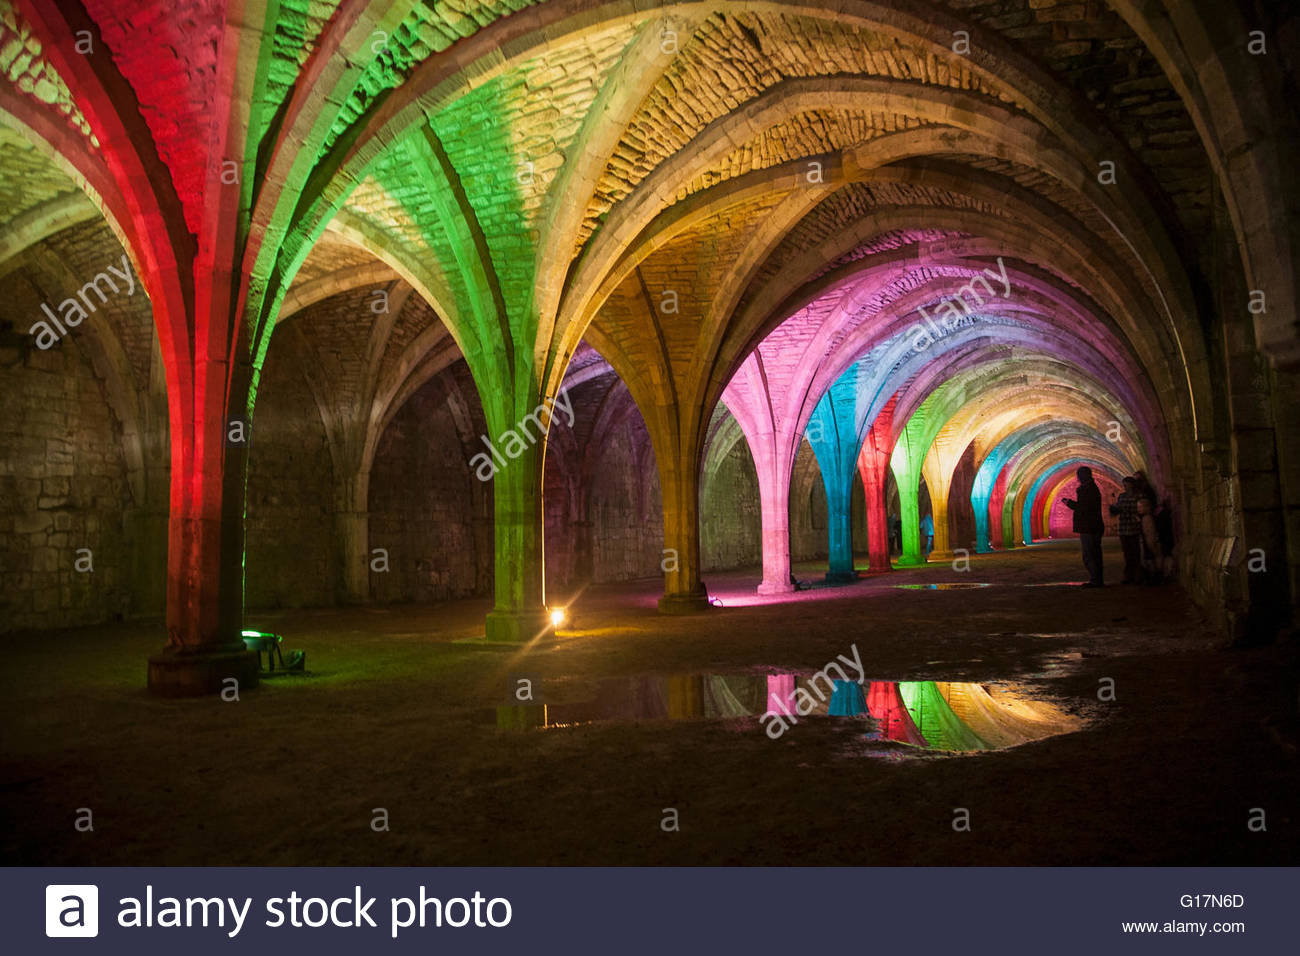 Le Cellarium, l'abbaye de Fountains, Ripon, Yorkshire Photo Stock